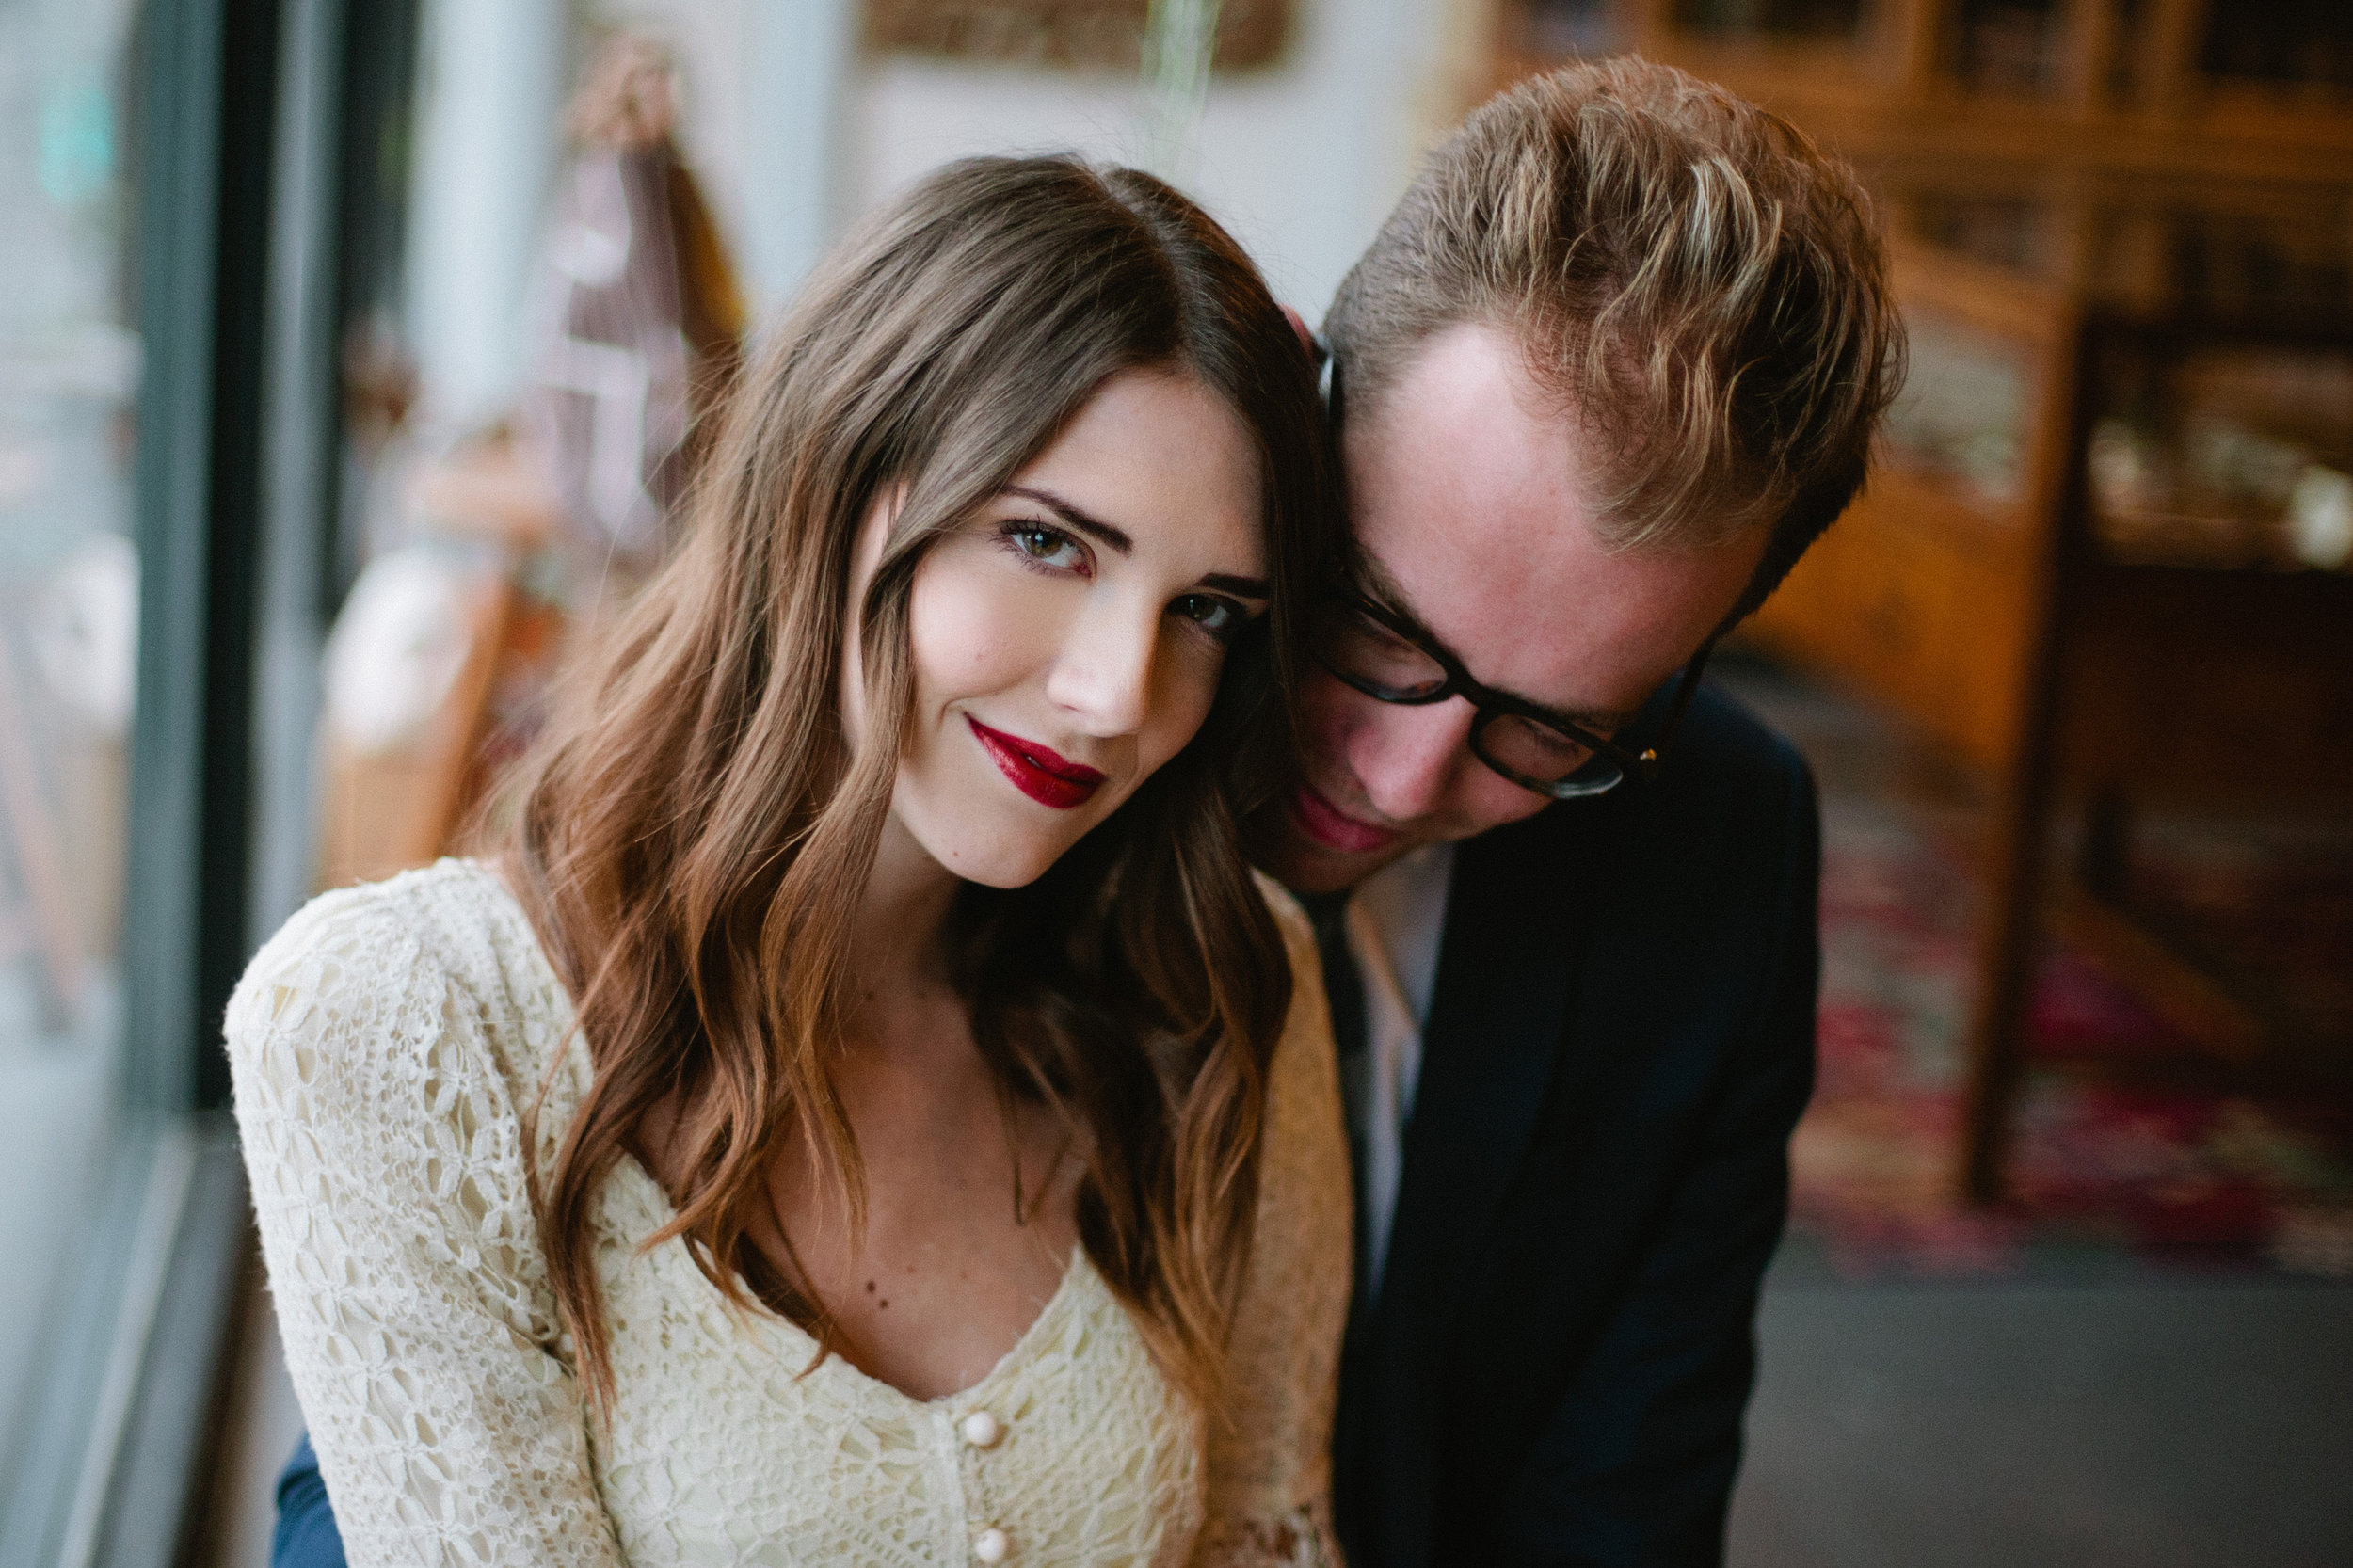 Wedding Photographer Photographers Elopement Travel Destination Romantic Bohemian Lifestyle Candid Creative Traveling Salt Lake Photography Inspiration Seattle Portland